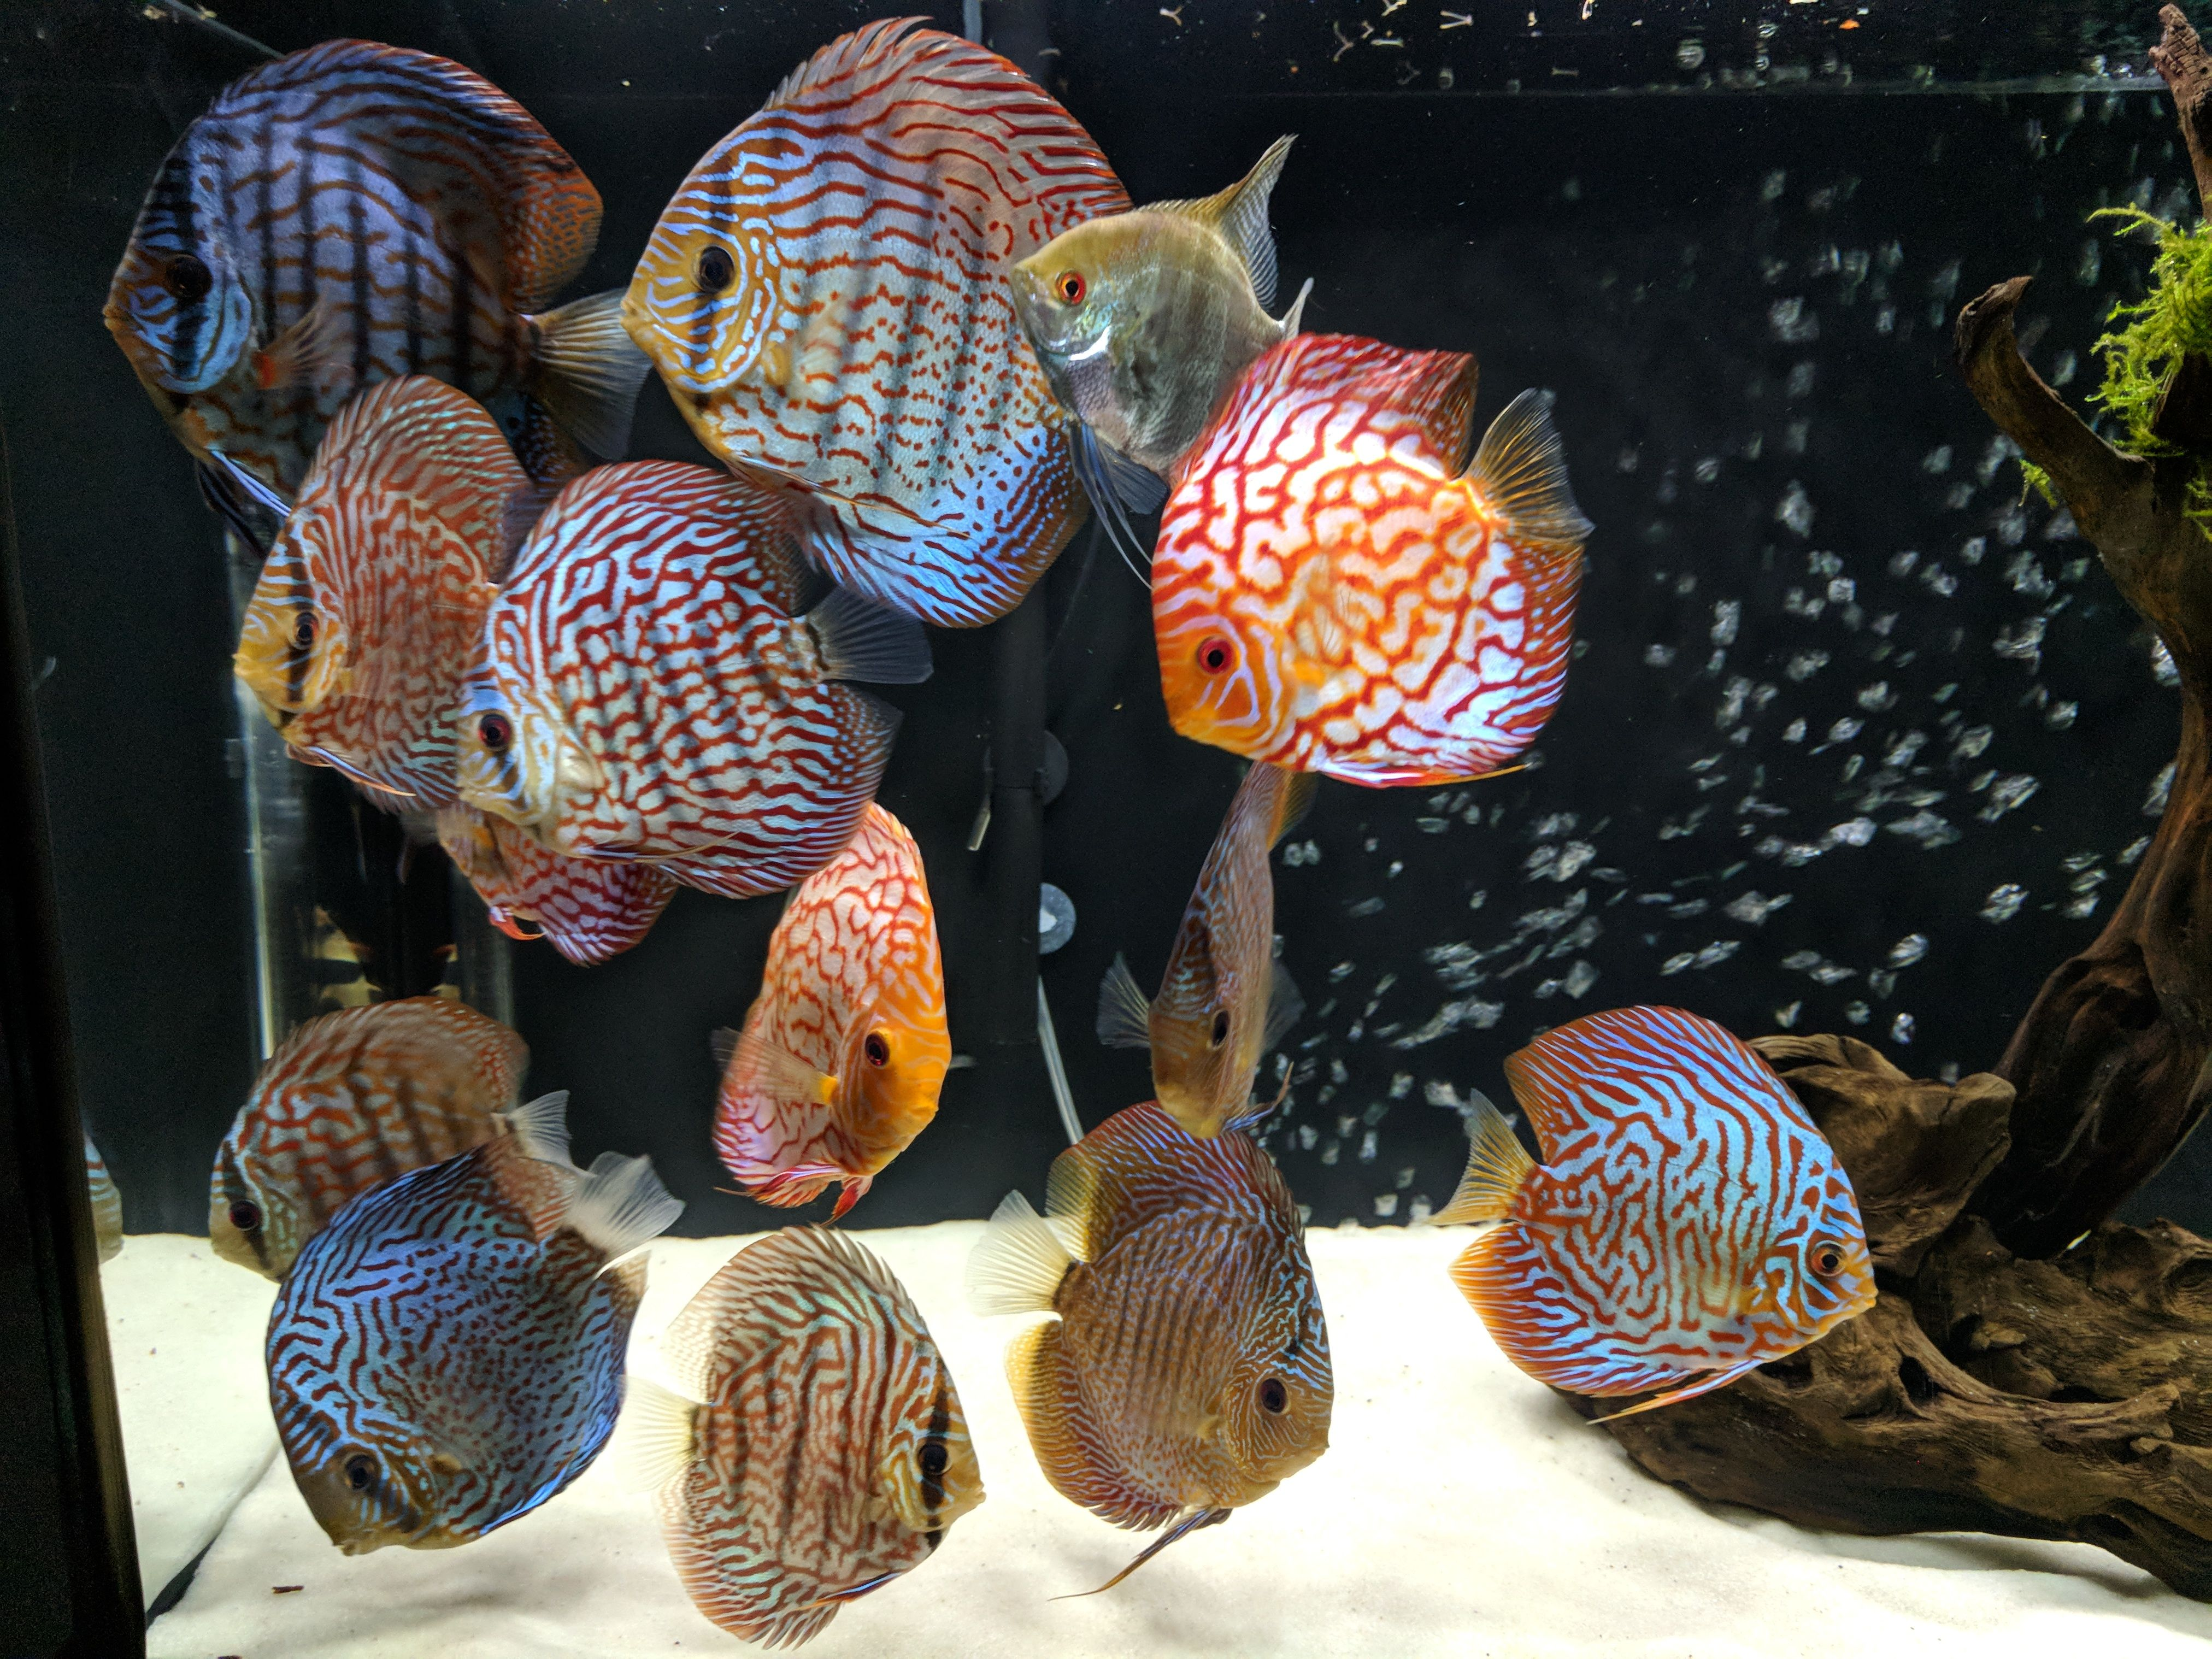 How To Care For Discus Fish Mistakes And Lessons Akvarium Diskus